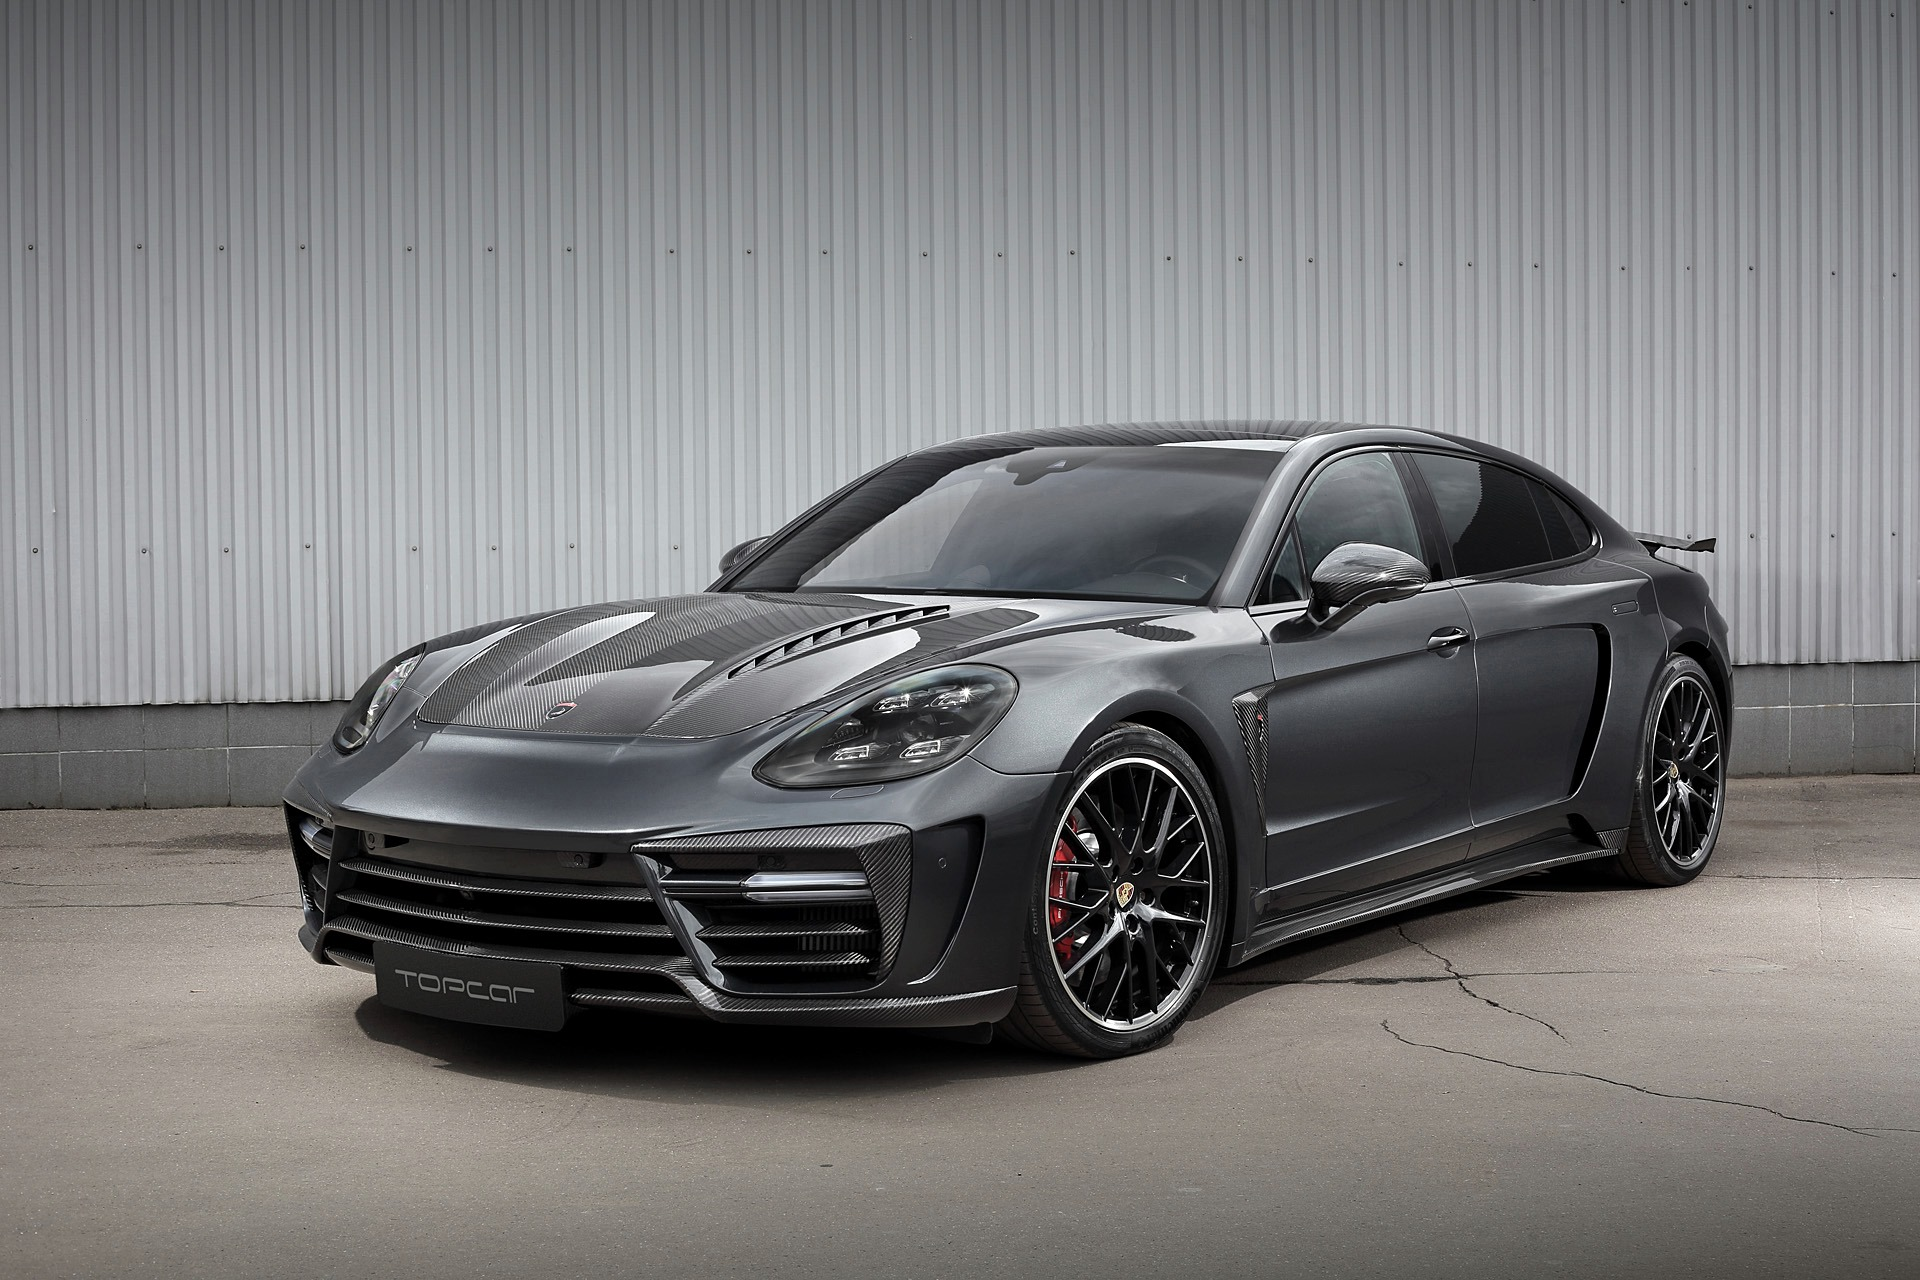 TopCar Creates Widebody Kit for Porsche Panamera Turbo